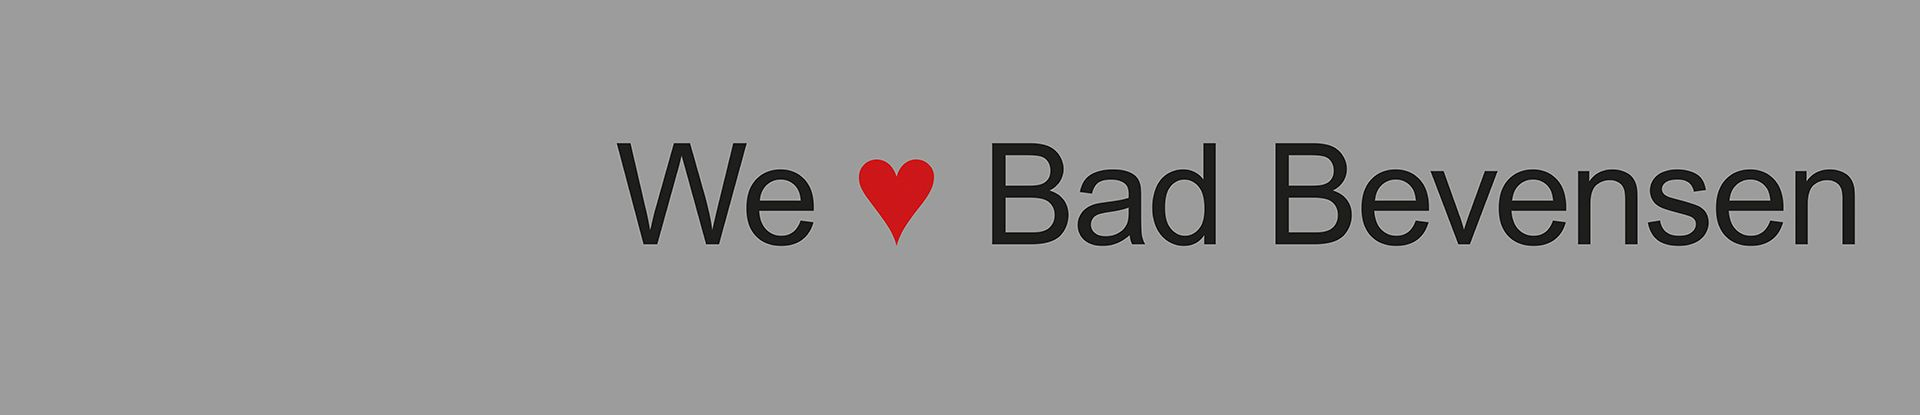 We love Bad Bevensen